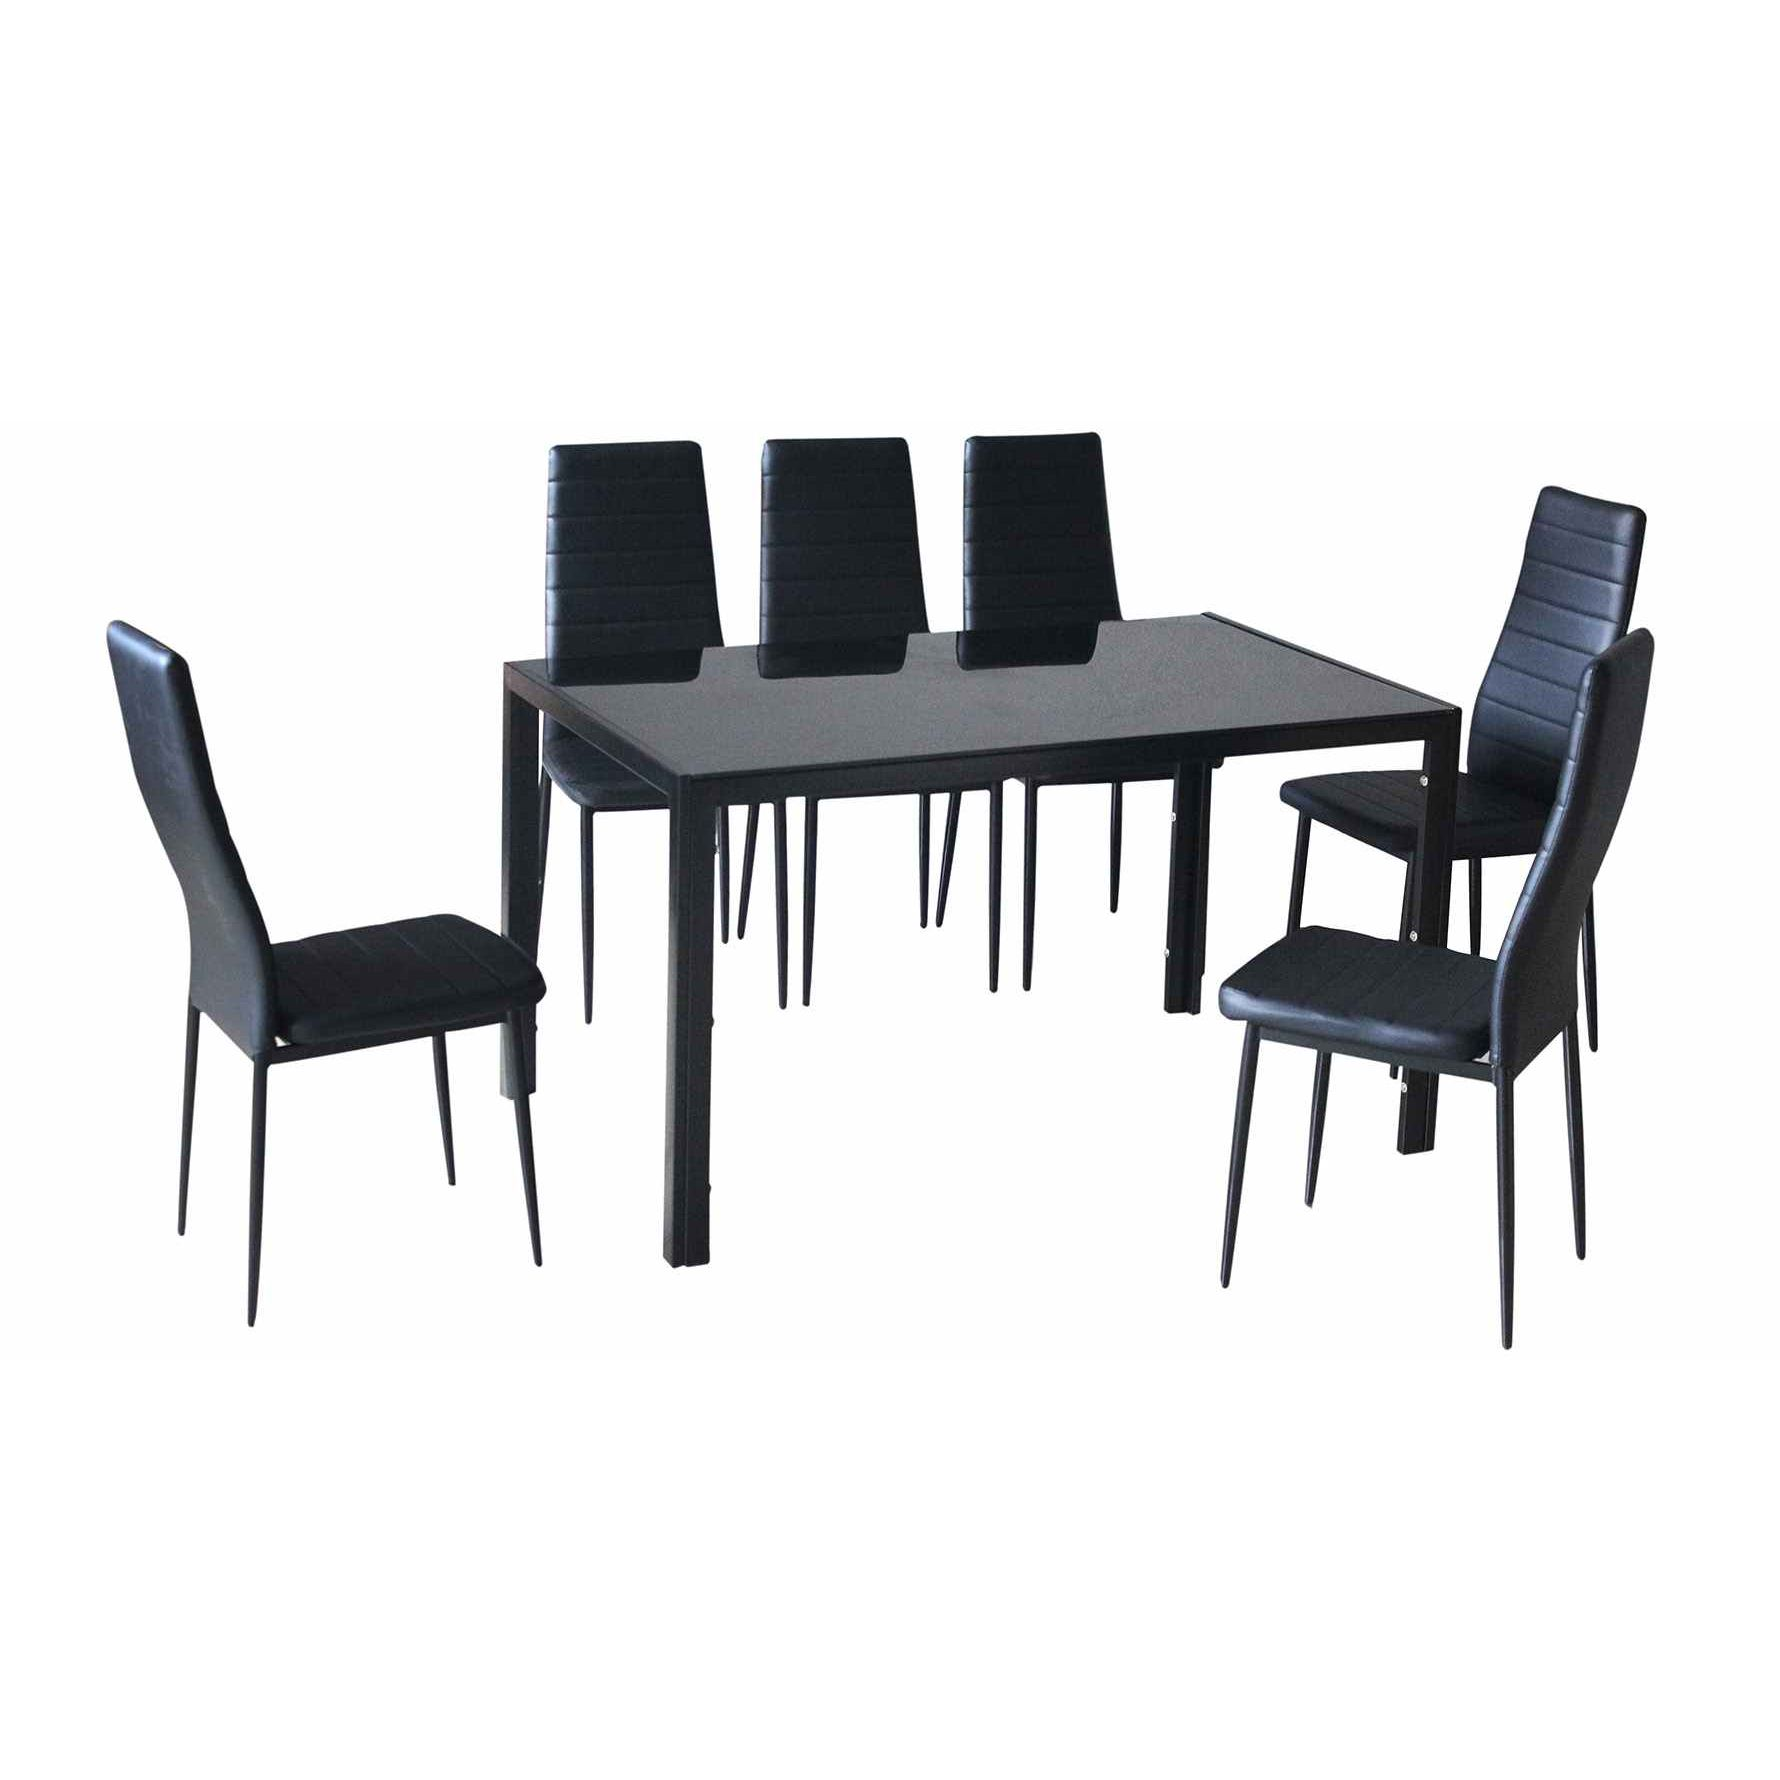 Table verre 6 chaises for Table en verre 6 chaises